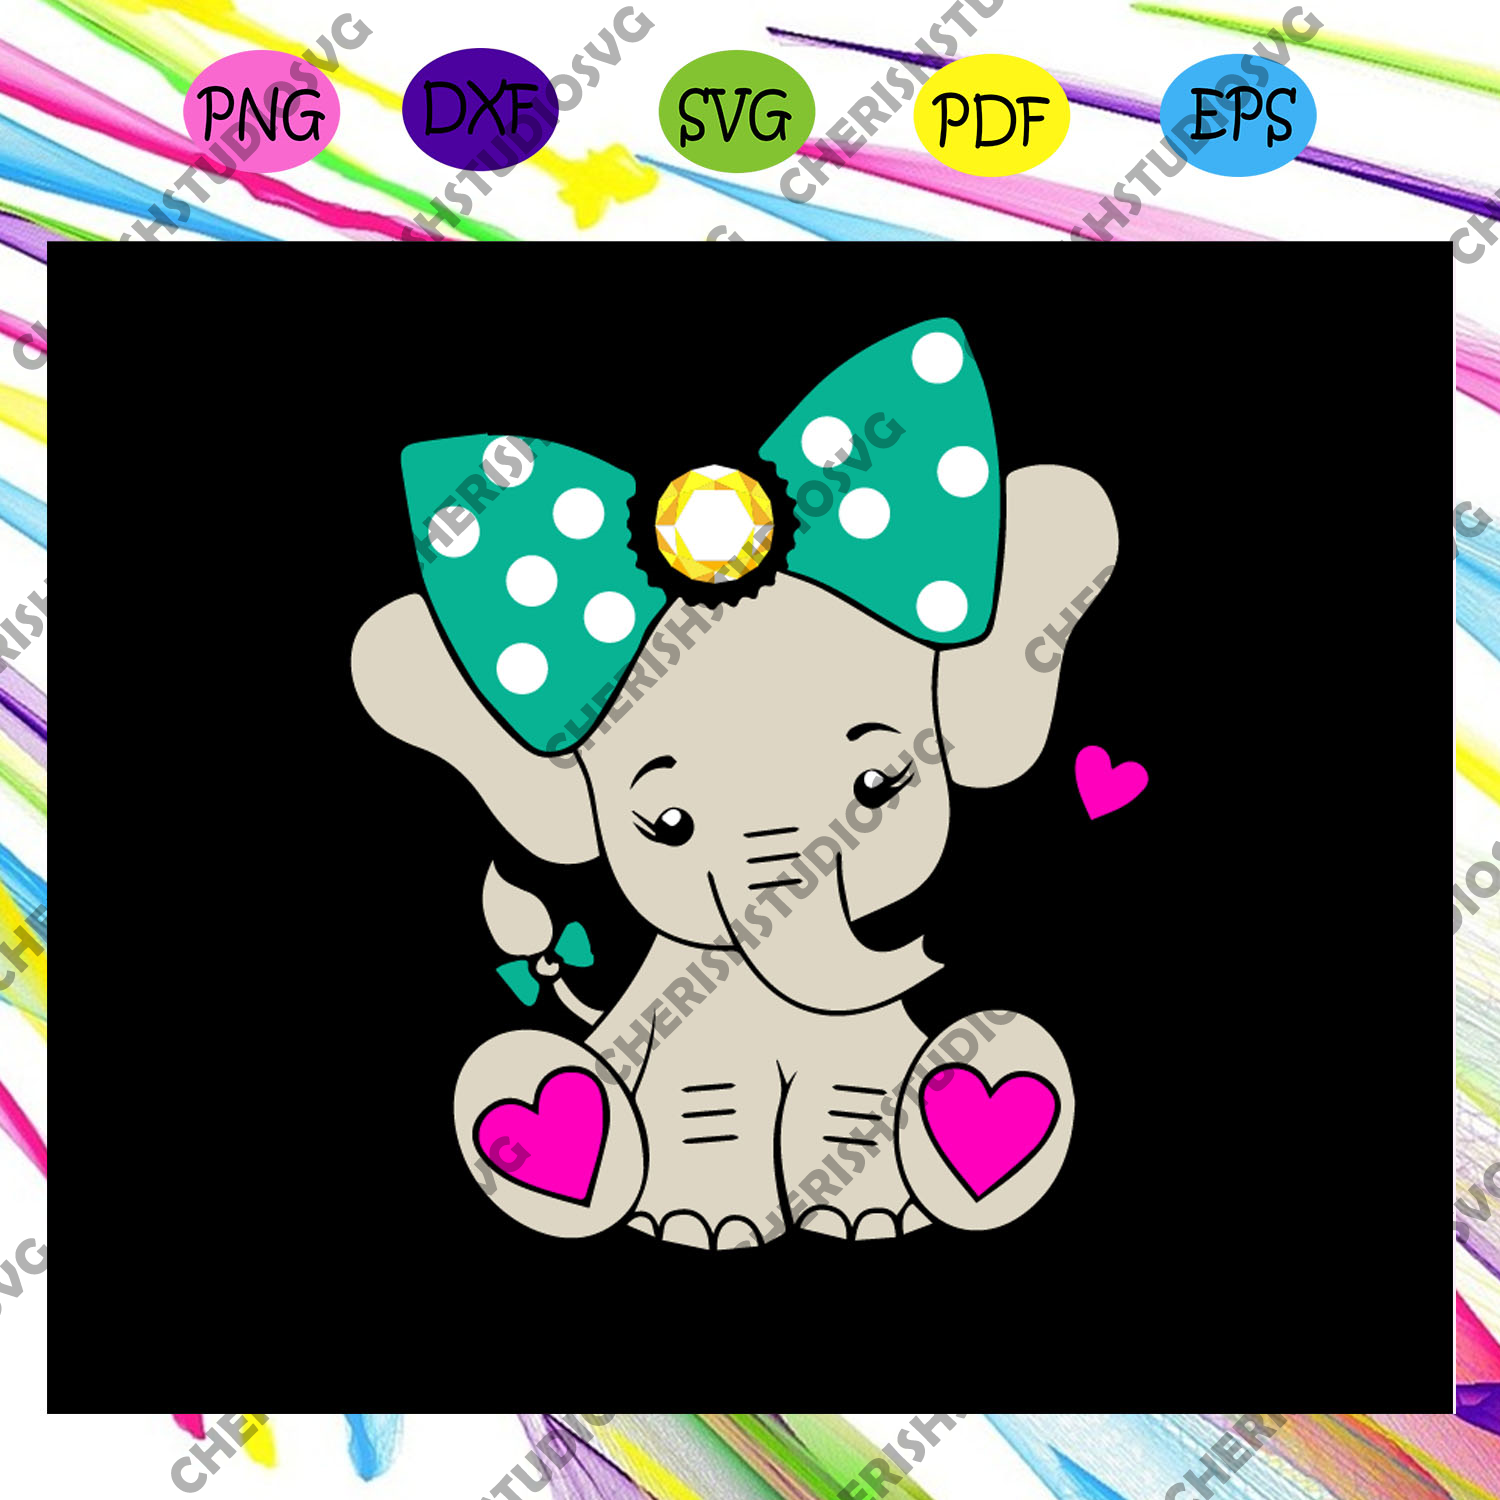 Elephant love, animal lover gift, elephant gift, elephant shirt, elephant clipart, elephant lover gift, elephant owner svg,trending svg For Silhouette, Files For Cricut, SVG, DXF, EPS, PNG Instant Download